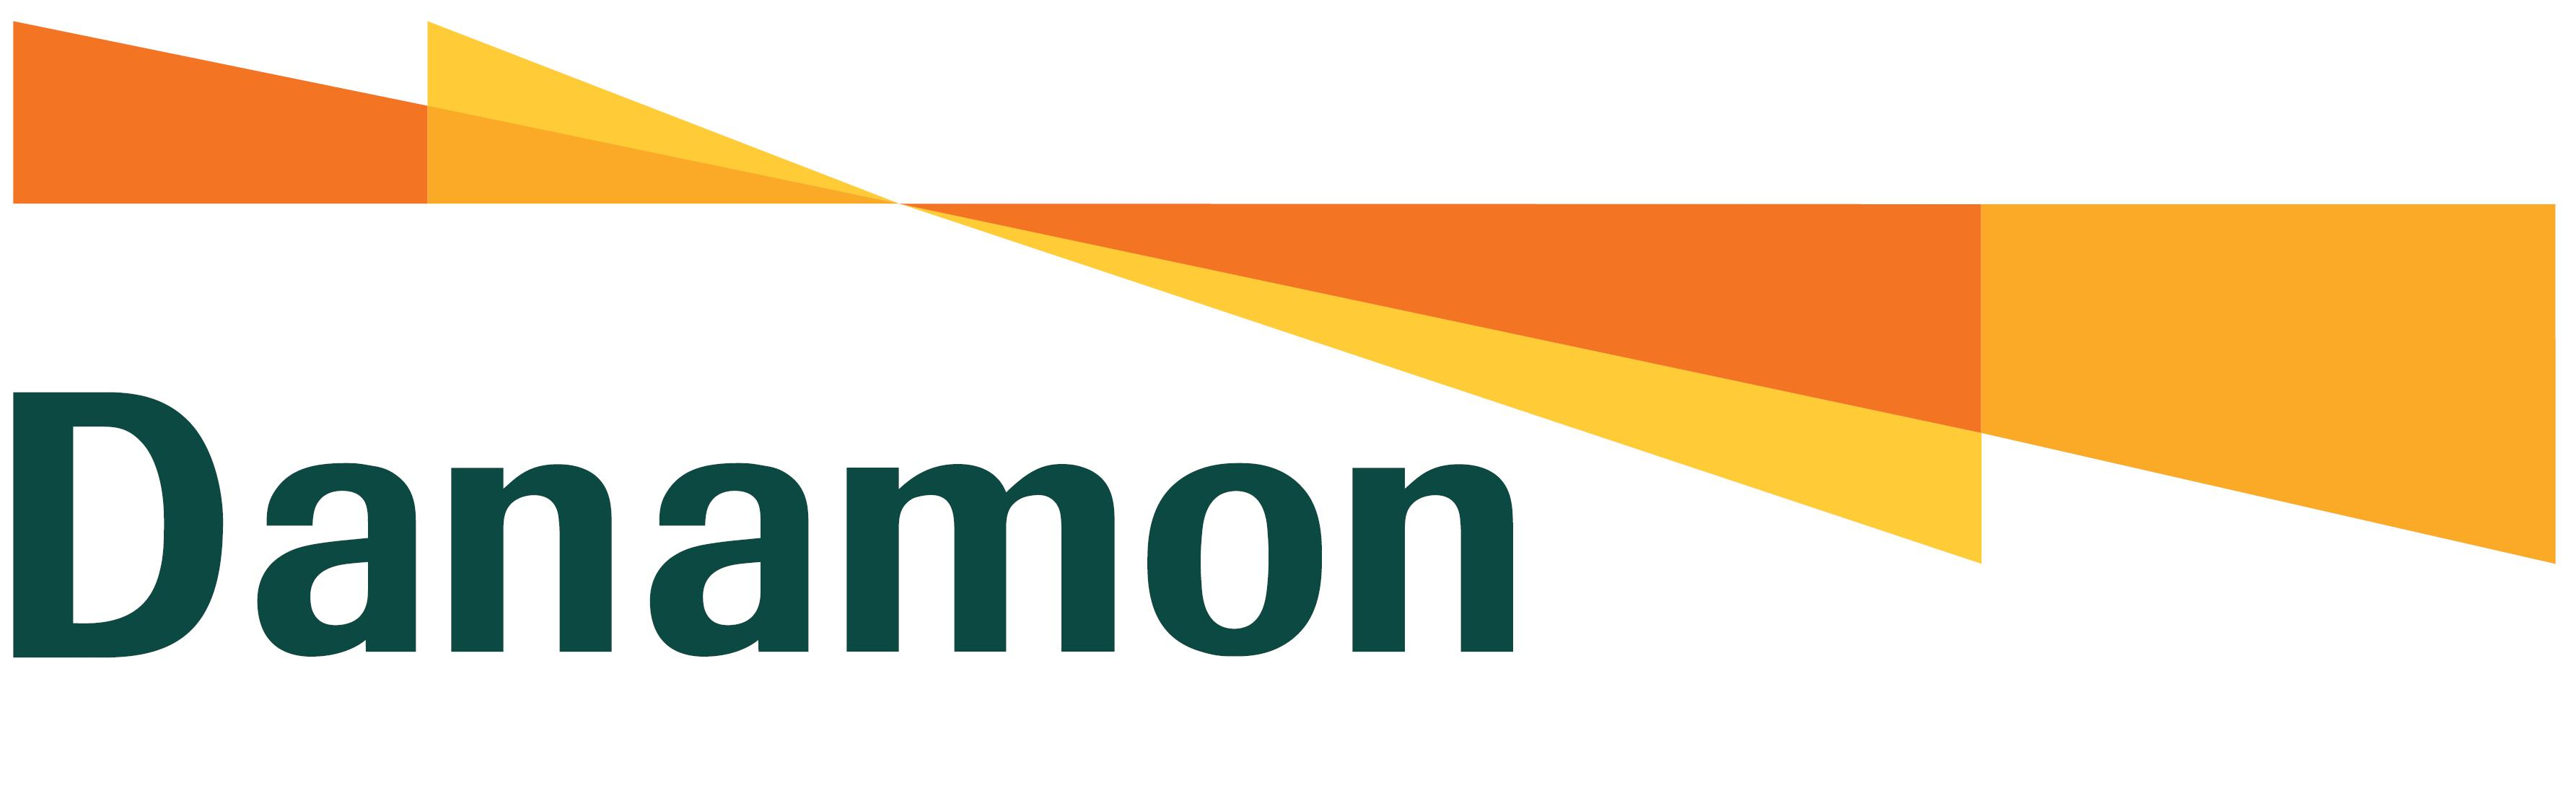 Danamon Improves User Experience With Always Available Fast And Secure Access To Banking Services Using F5 S Solutions